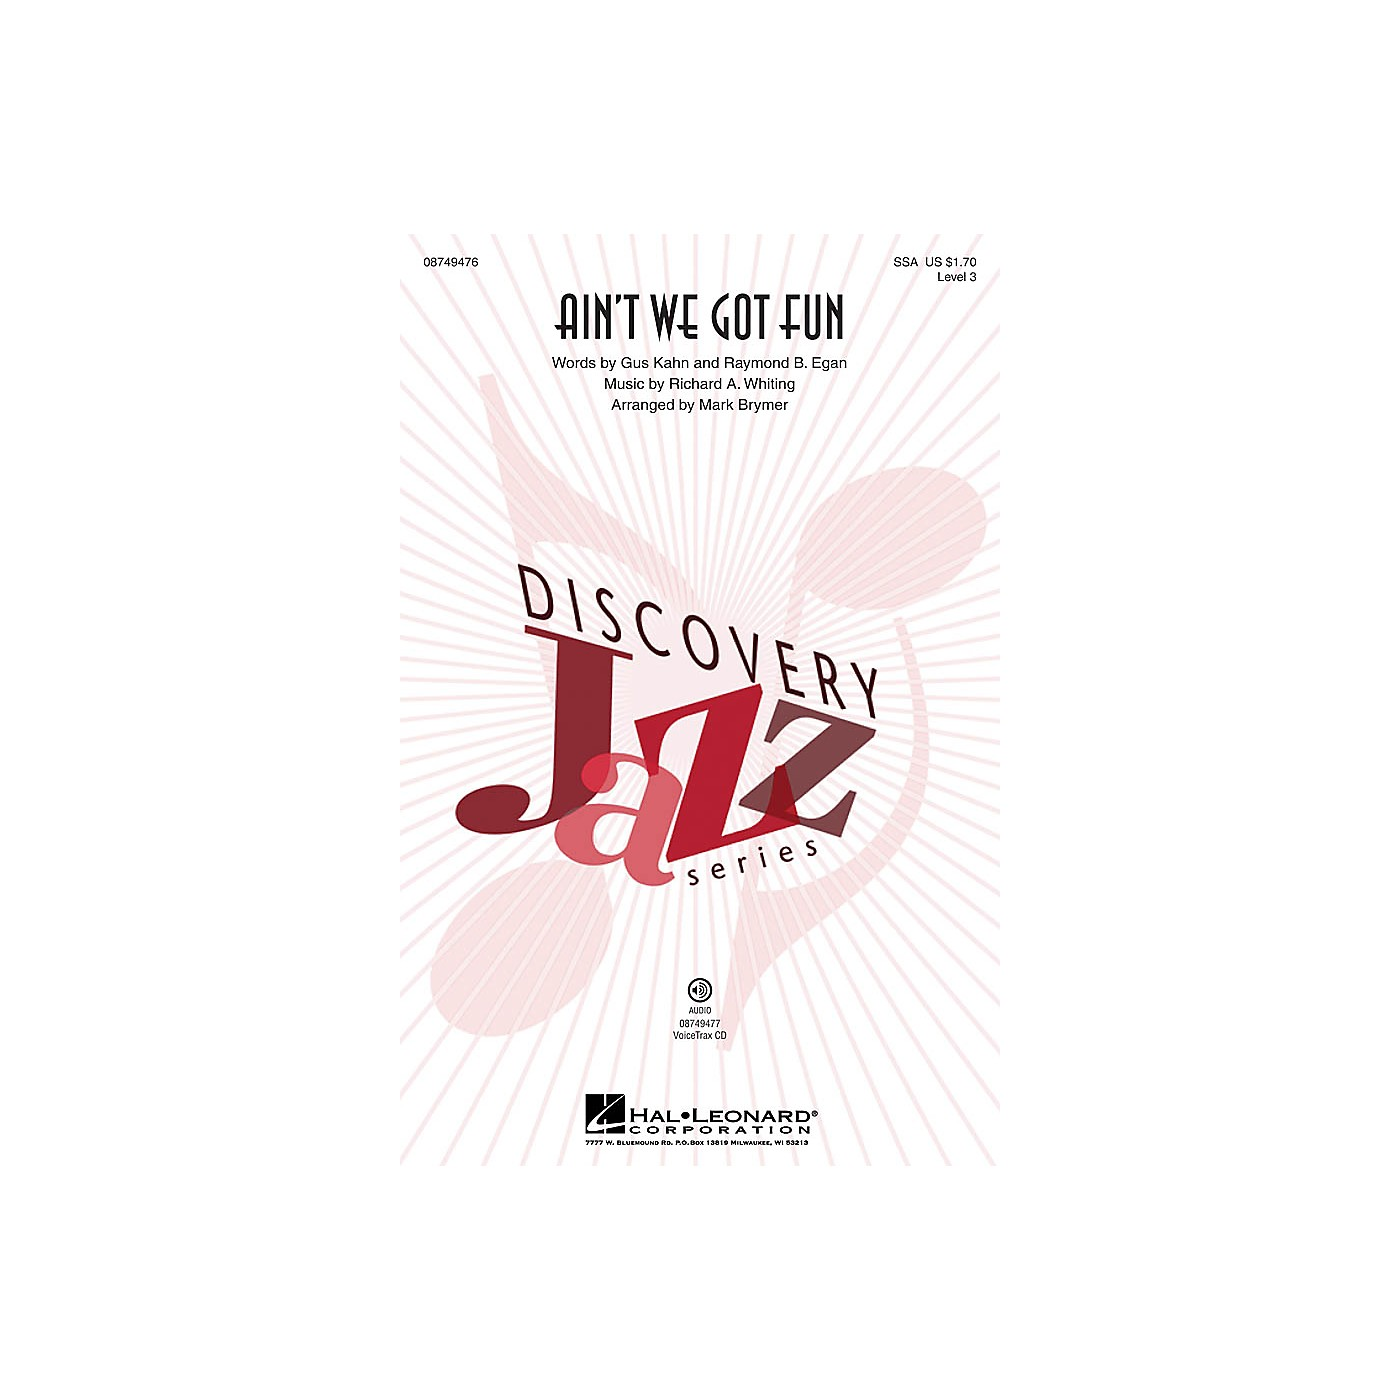 Hal Leonard Ain't We Got Fun (Discovery Level 3) SSA by Renee Olstead arranged by Mark Brymer thumbnail